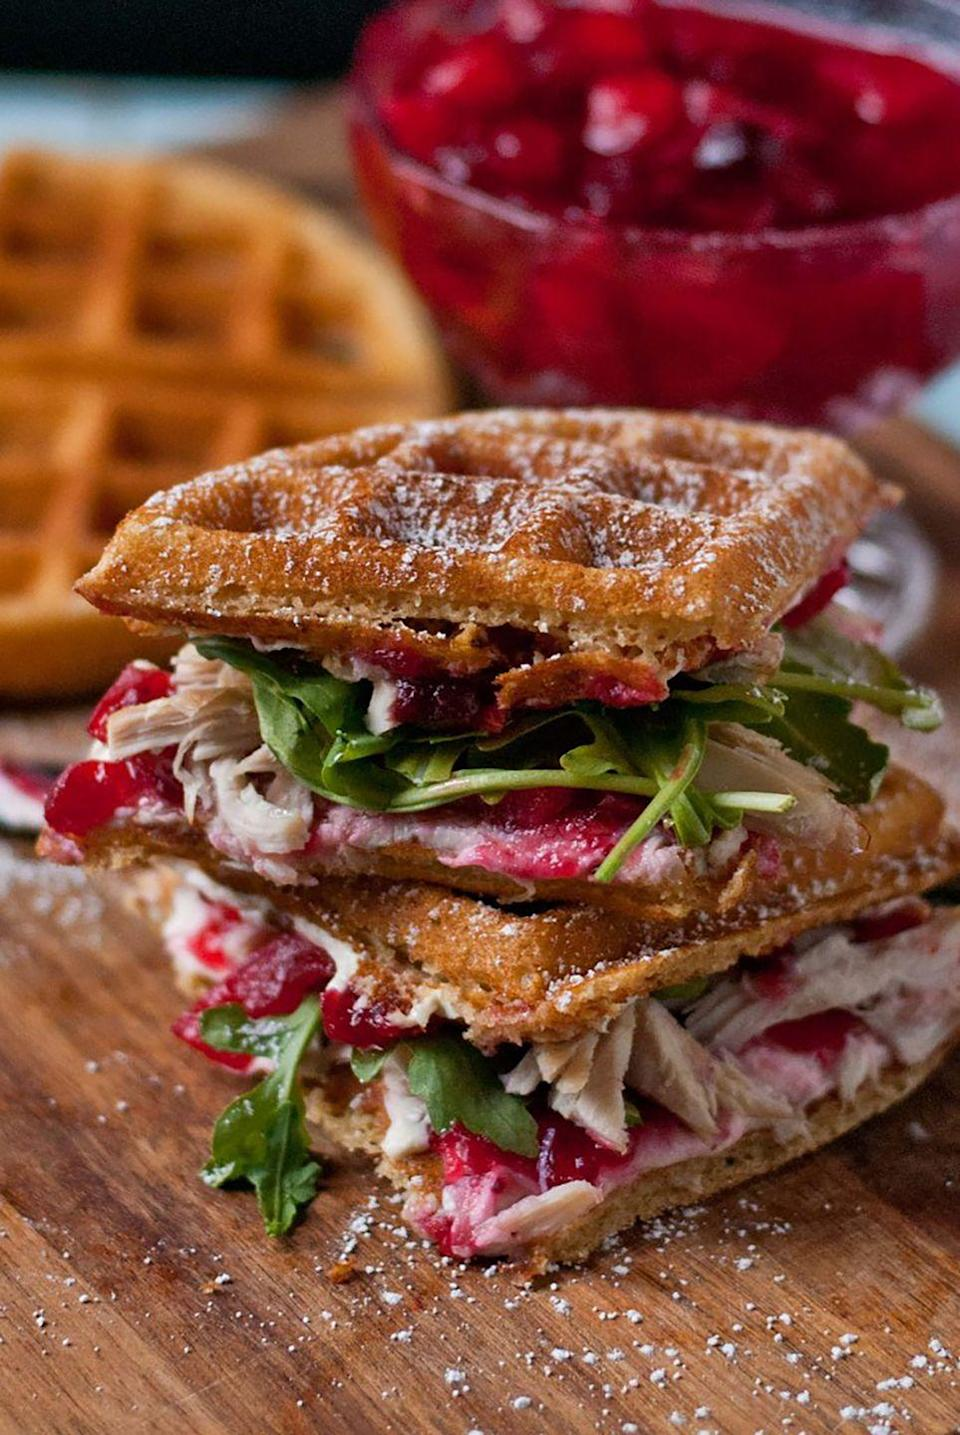 """<p>Stop everything: We found the perfect mix of sweet and savory, and it's these waffle sandwiches.</p><p><strong>Get the recipe at <a href=""""http://neighborfoodblog.com/2013/12/waffled-cranberry-cream-cheese-turkey-sandwiches-sundaysupper.html"""" rel=""""nofollow noopener"""" target=""""_blank"""" data-ylk=""""slk:NeighborFood"""" class=""""link rapid-noclick-resp"""">NeighborFood</a>. </strong> </p>"""